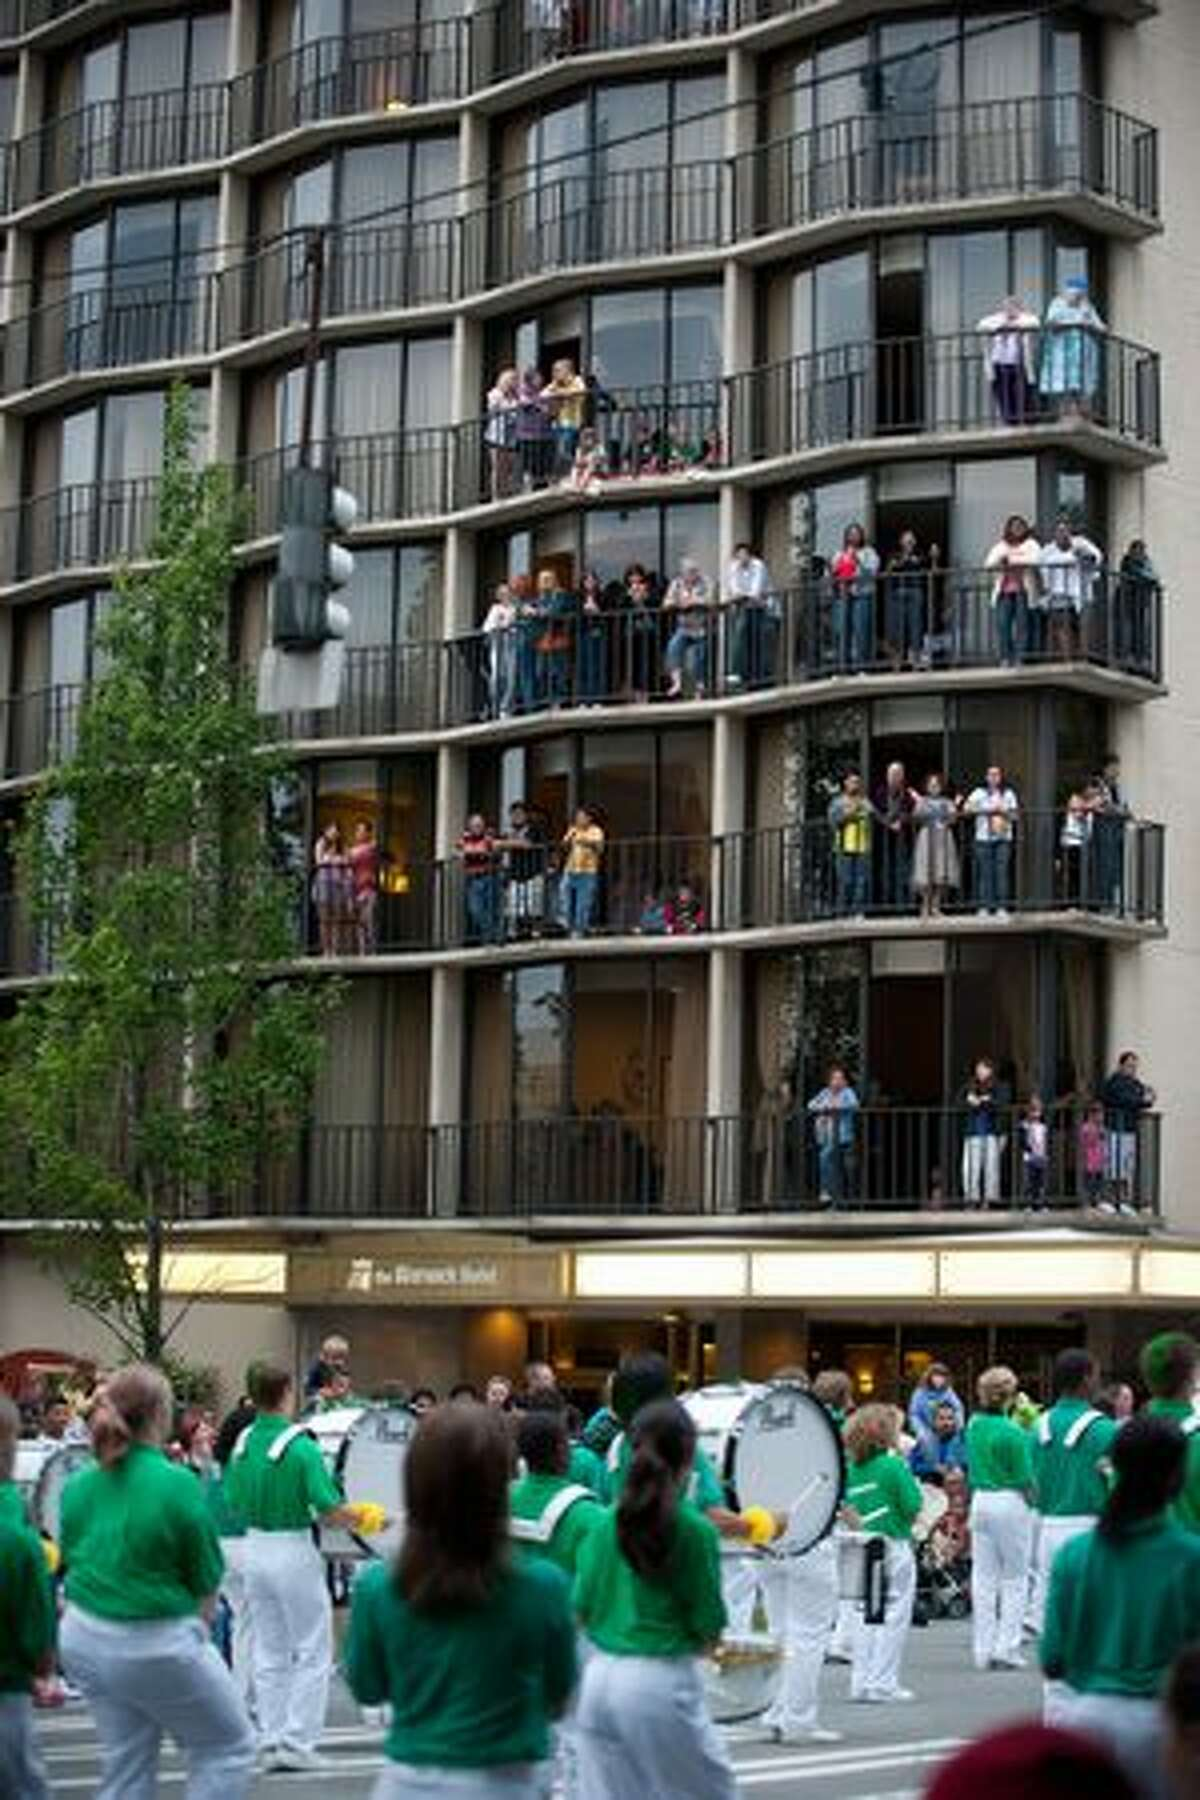 Spectators watch from the balconies of the Warwick Hotel as the parade passes below.